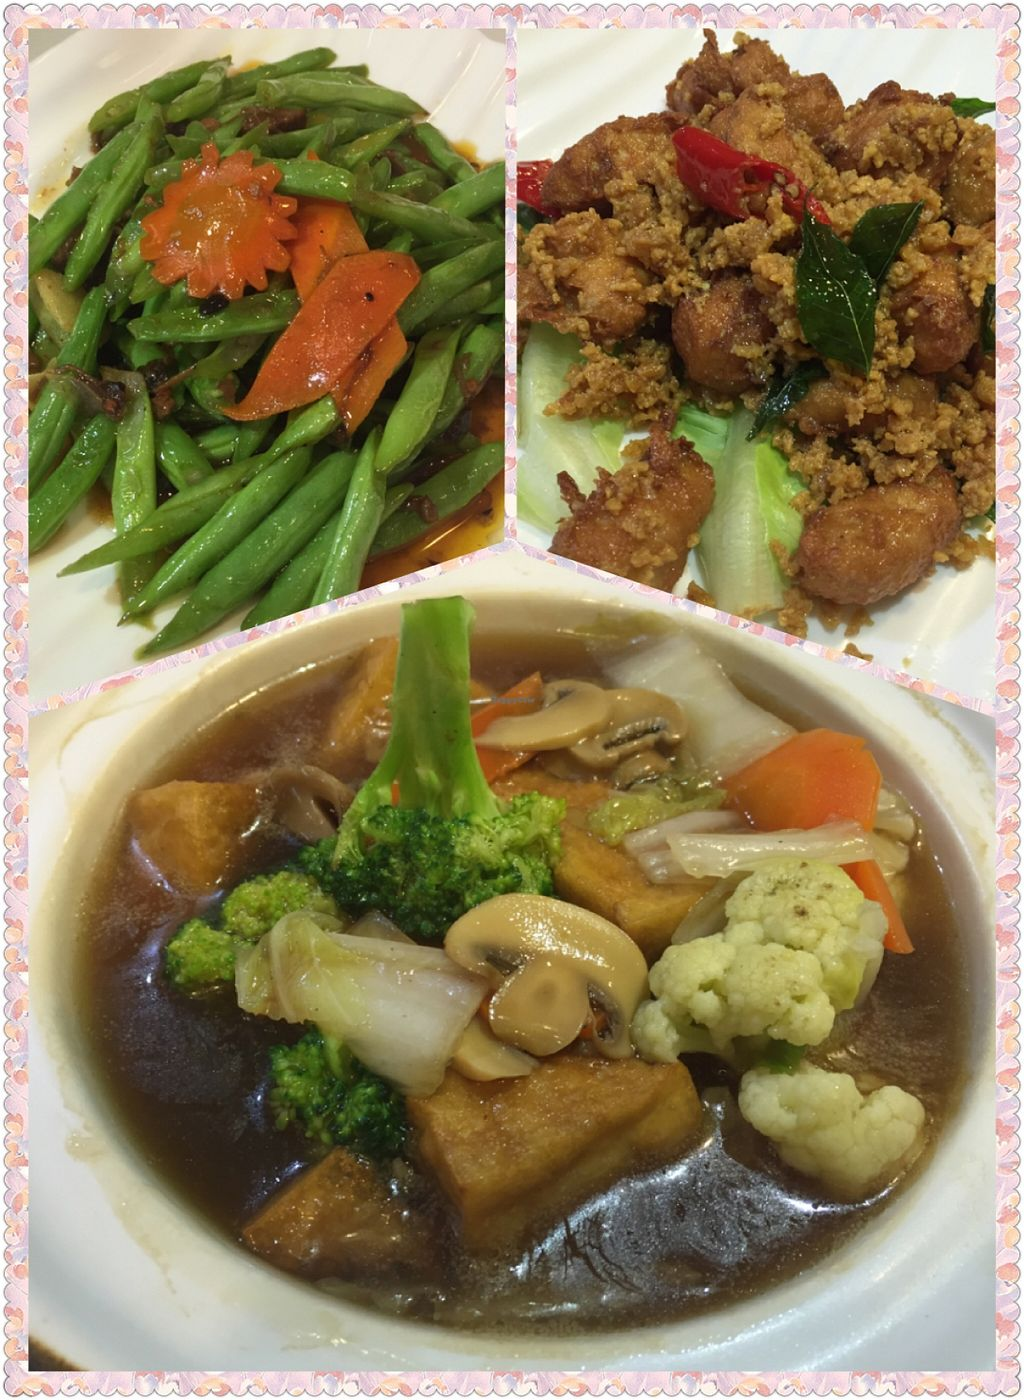 """Photo of CLOSED: Happy Garden Vege Cafe - Damansara Perdana  by <a href=""""/members/profile/FynnChan"""">FynnChan</a> <br/>A lot of choice n the food is good! <br/> May 23, 2016  - <a href='/contact/abuse/image/74103/150486'>Report</a>"""